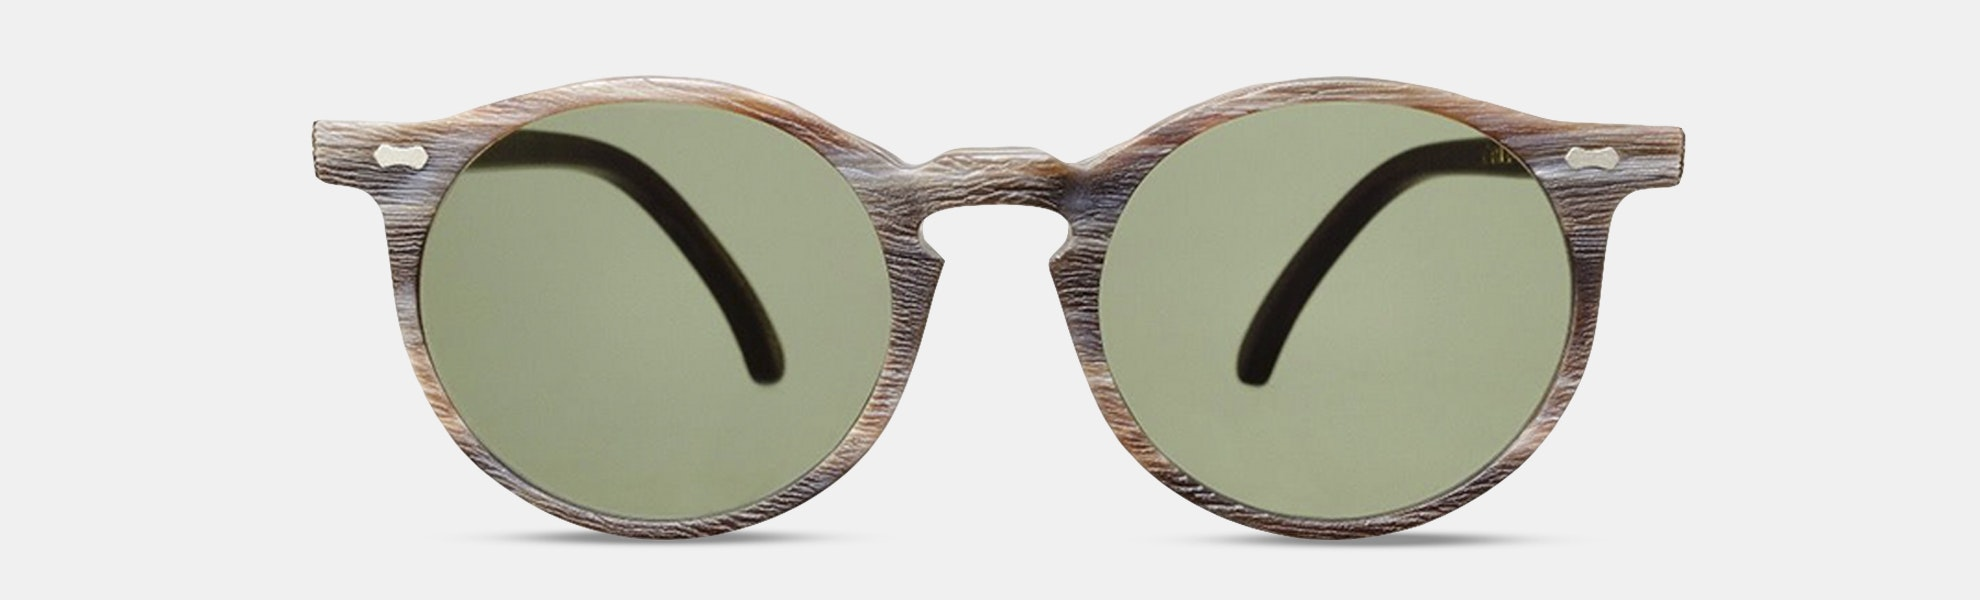 The Bespoke Dudes Canvas Sunglasses